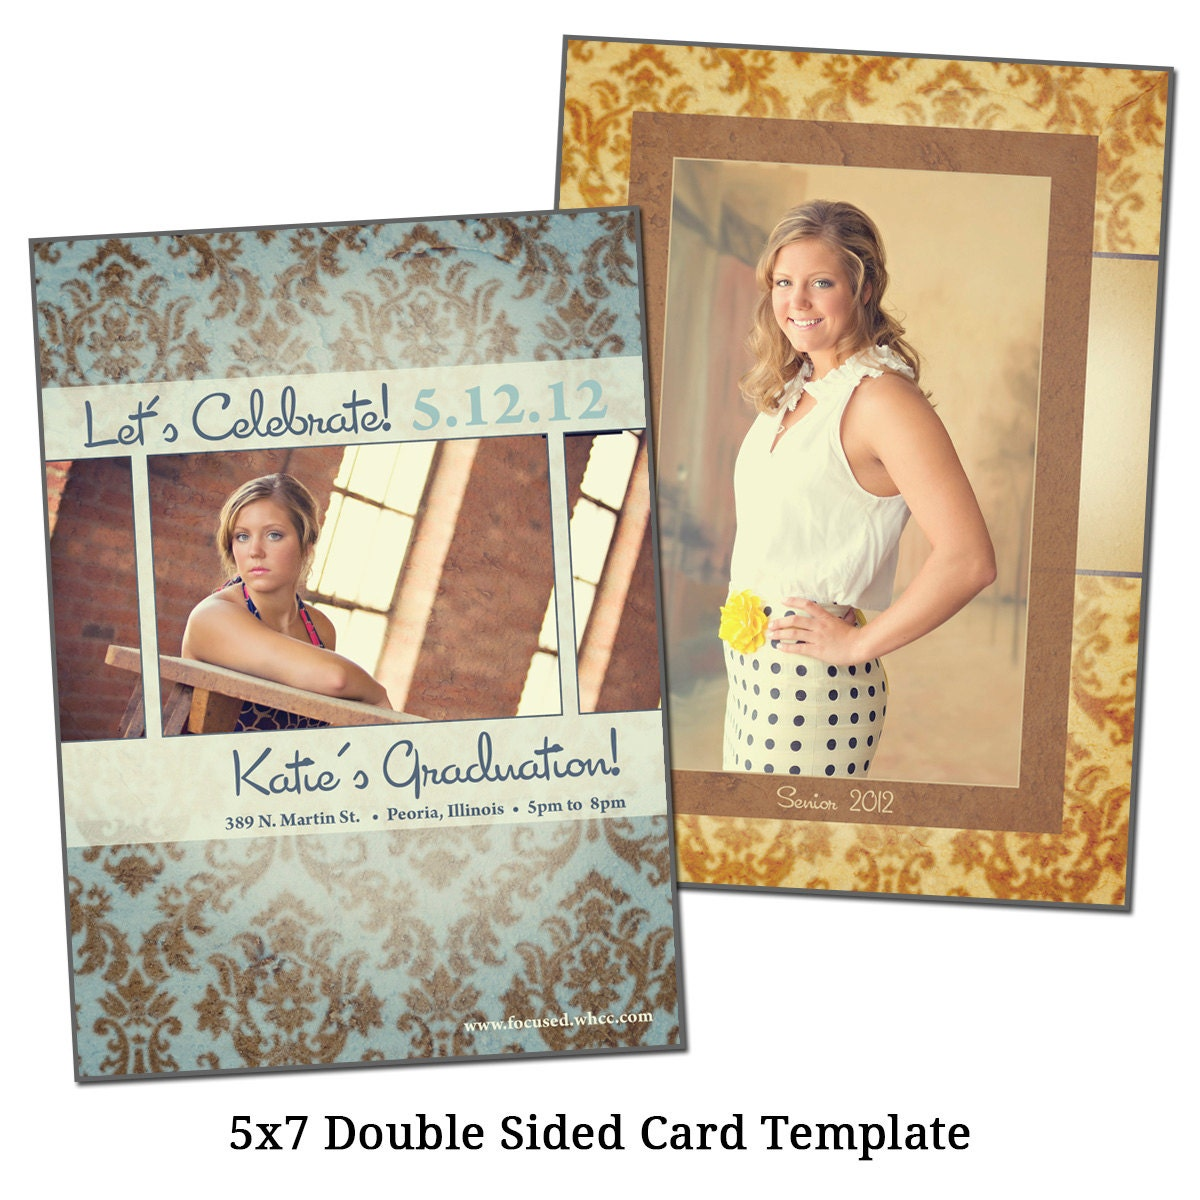 5x7 double sided card template senior damask by vgallerydesigns. Black Bedroom Furniture Sets. Home Design Ideas